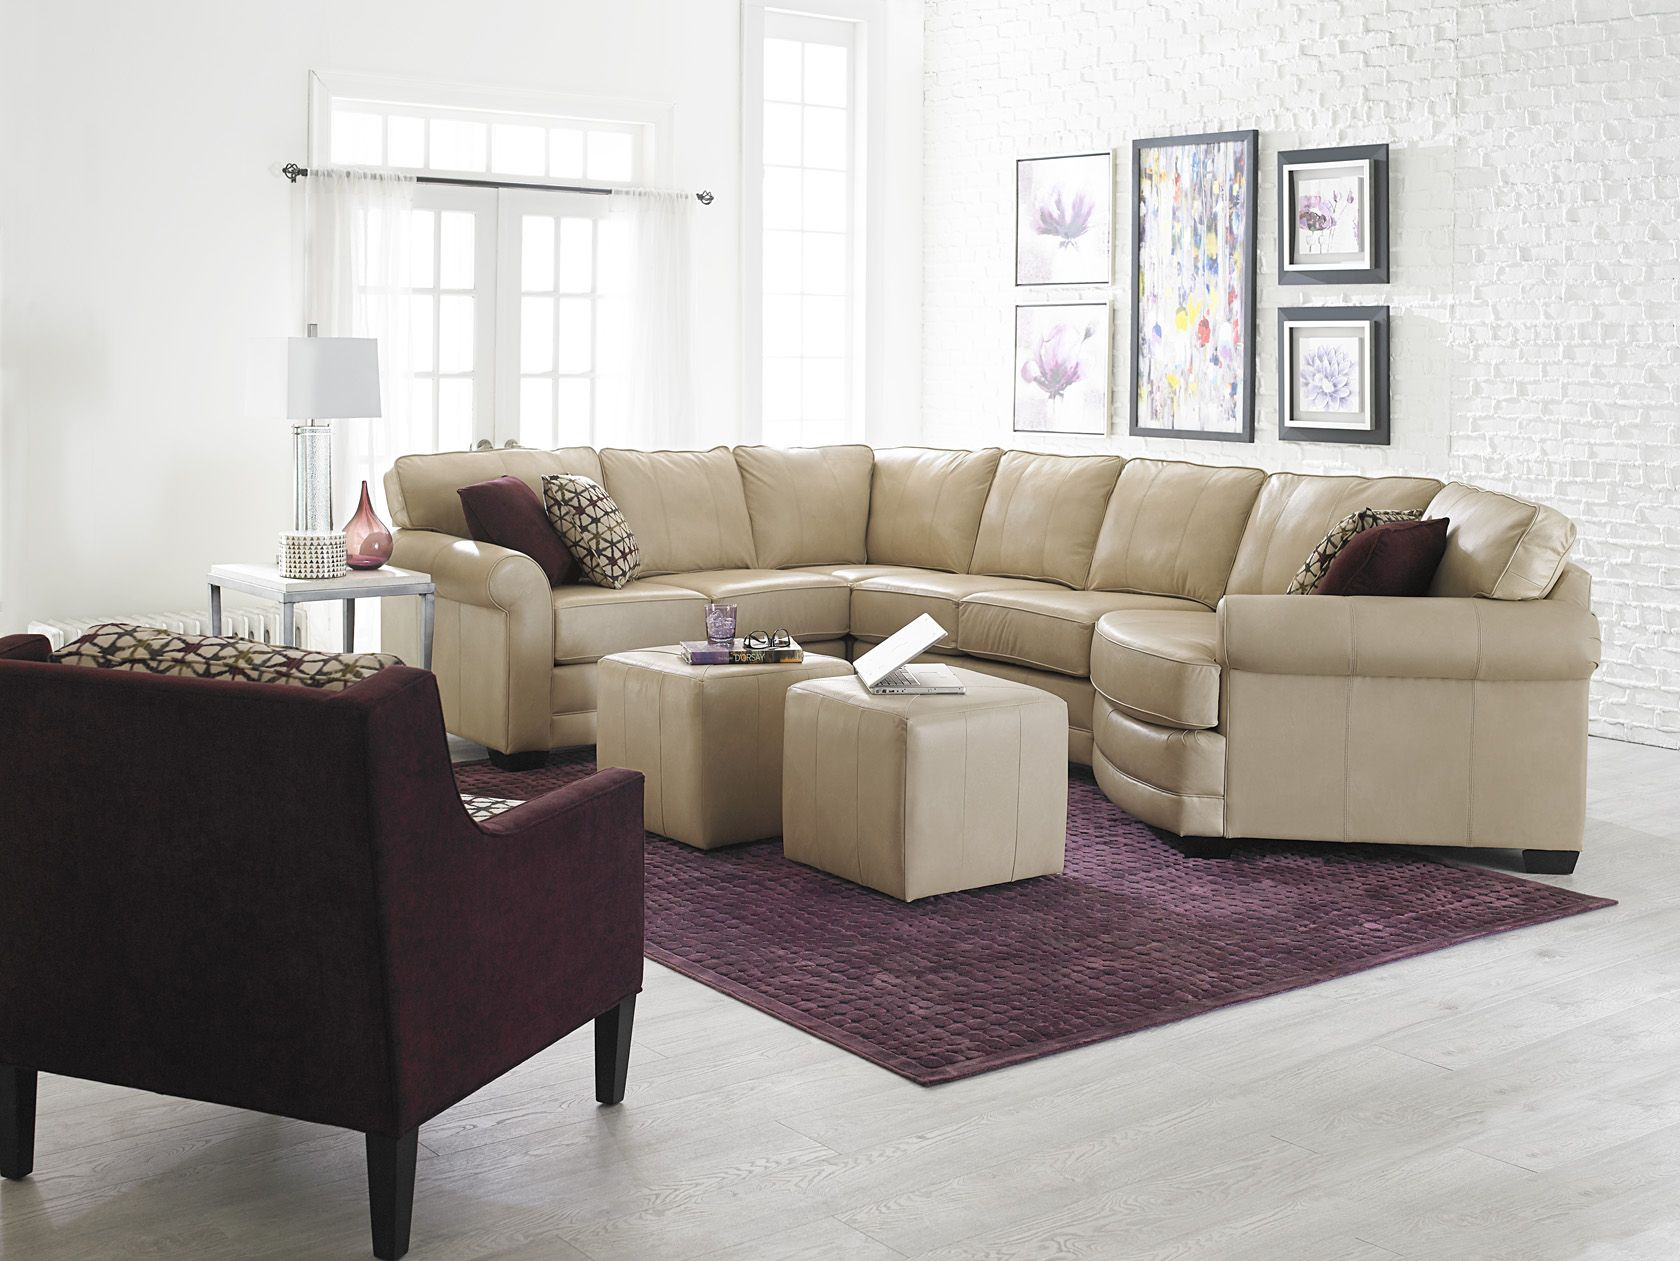 England Furniture Sectional Sofa Ious Kane S Furniture